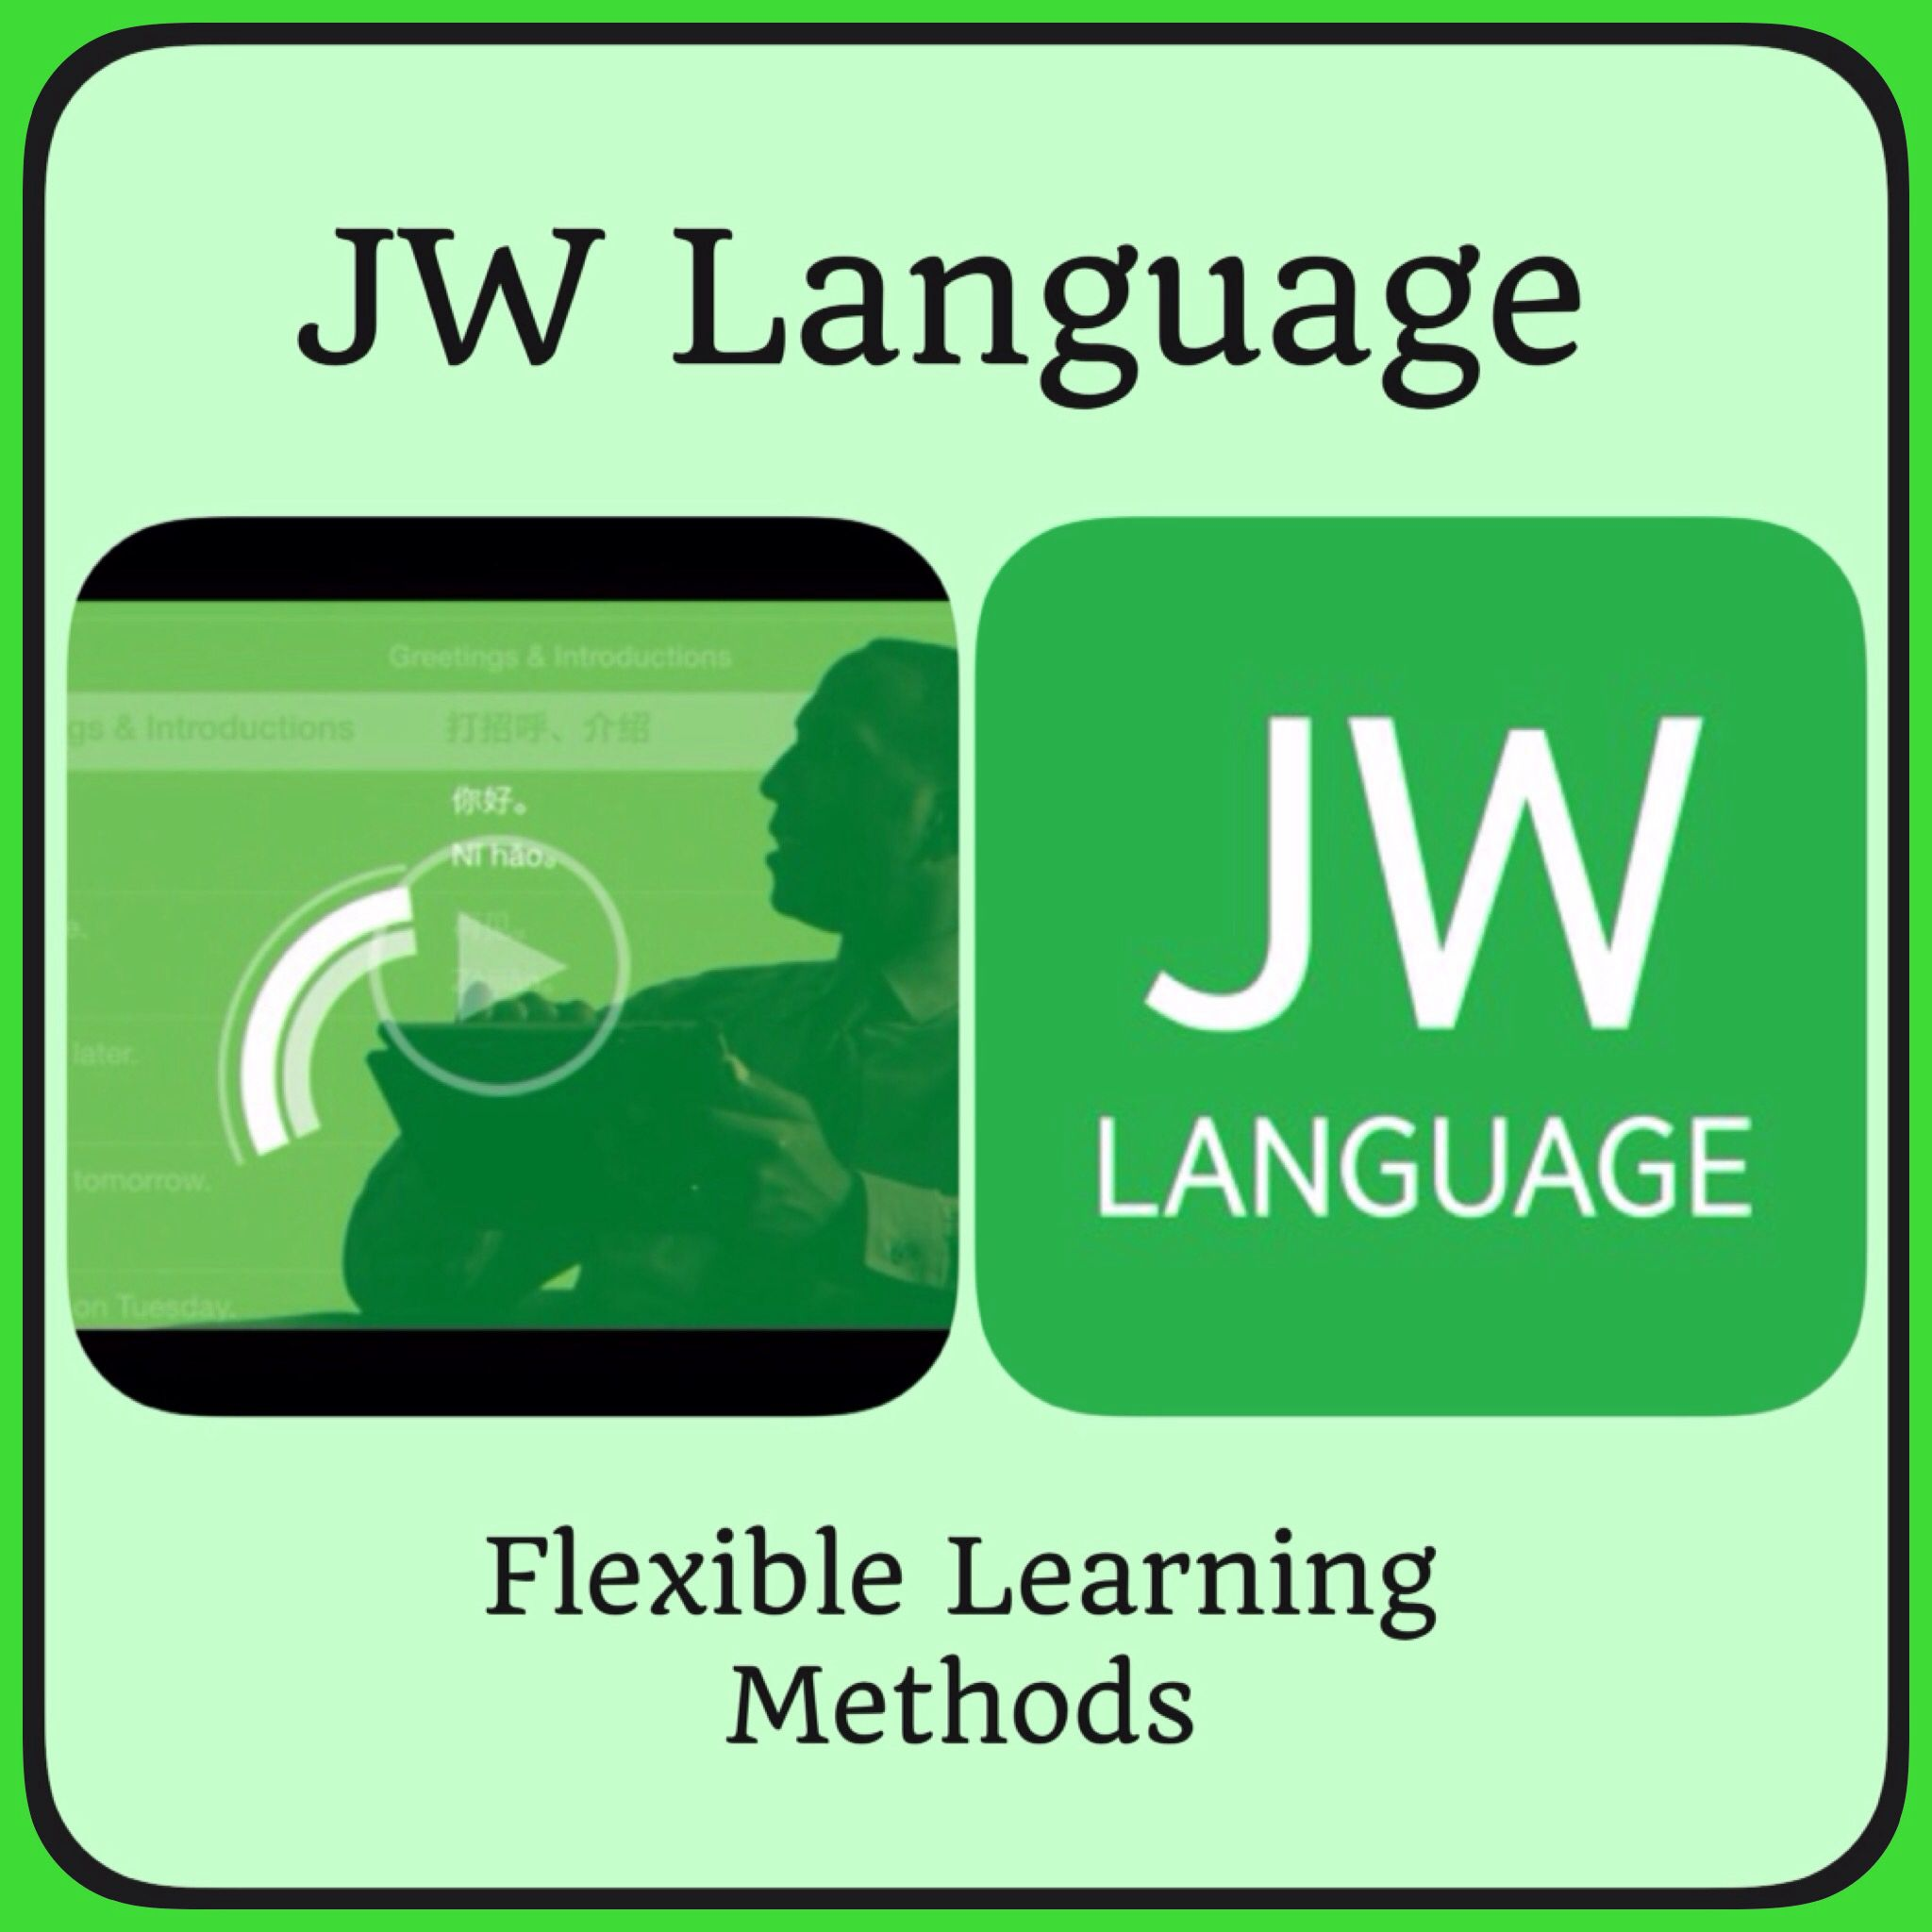 JW Language is an official app produced by Jehovah's